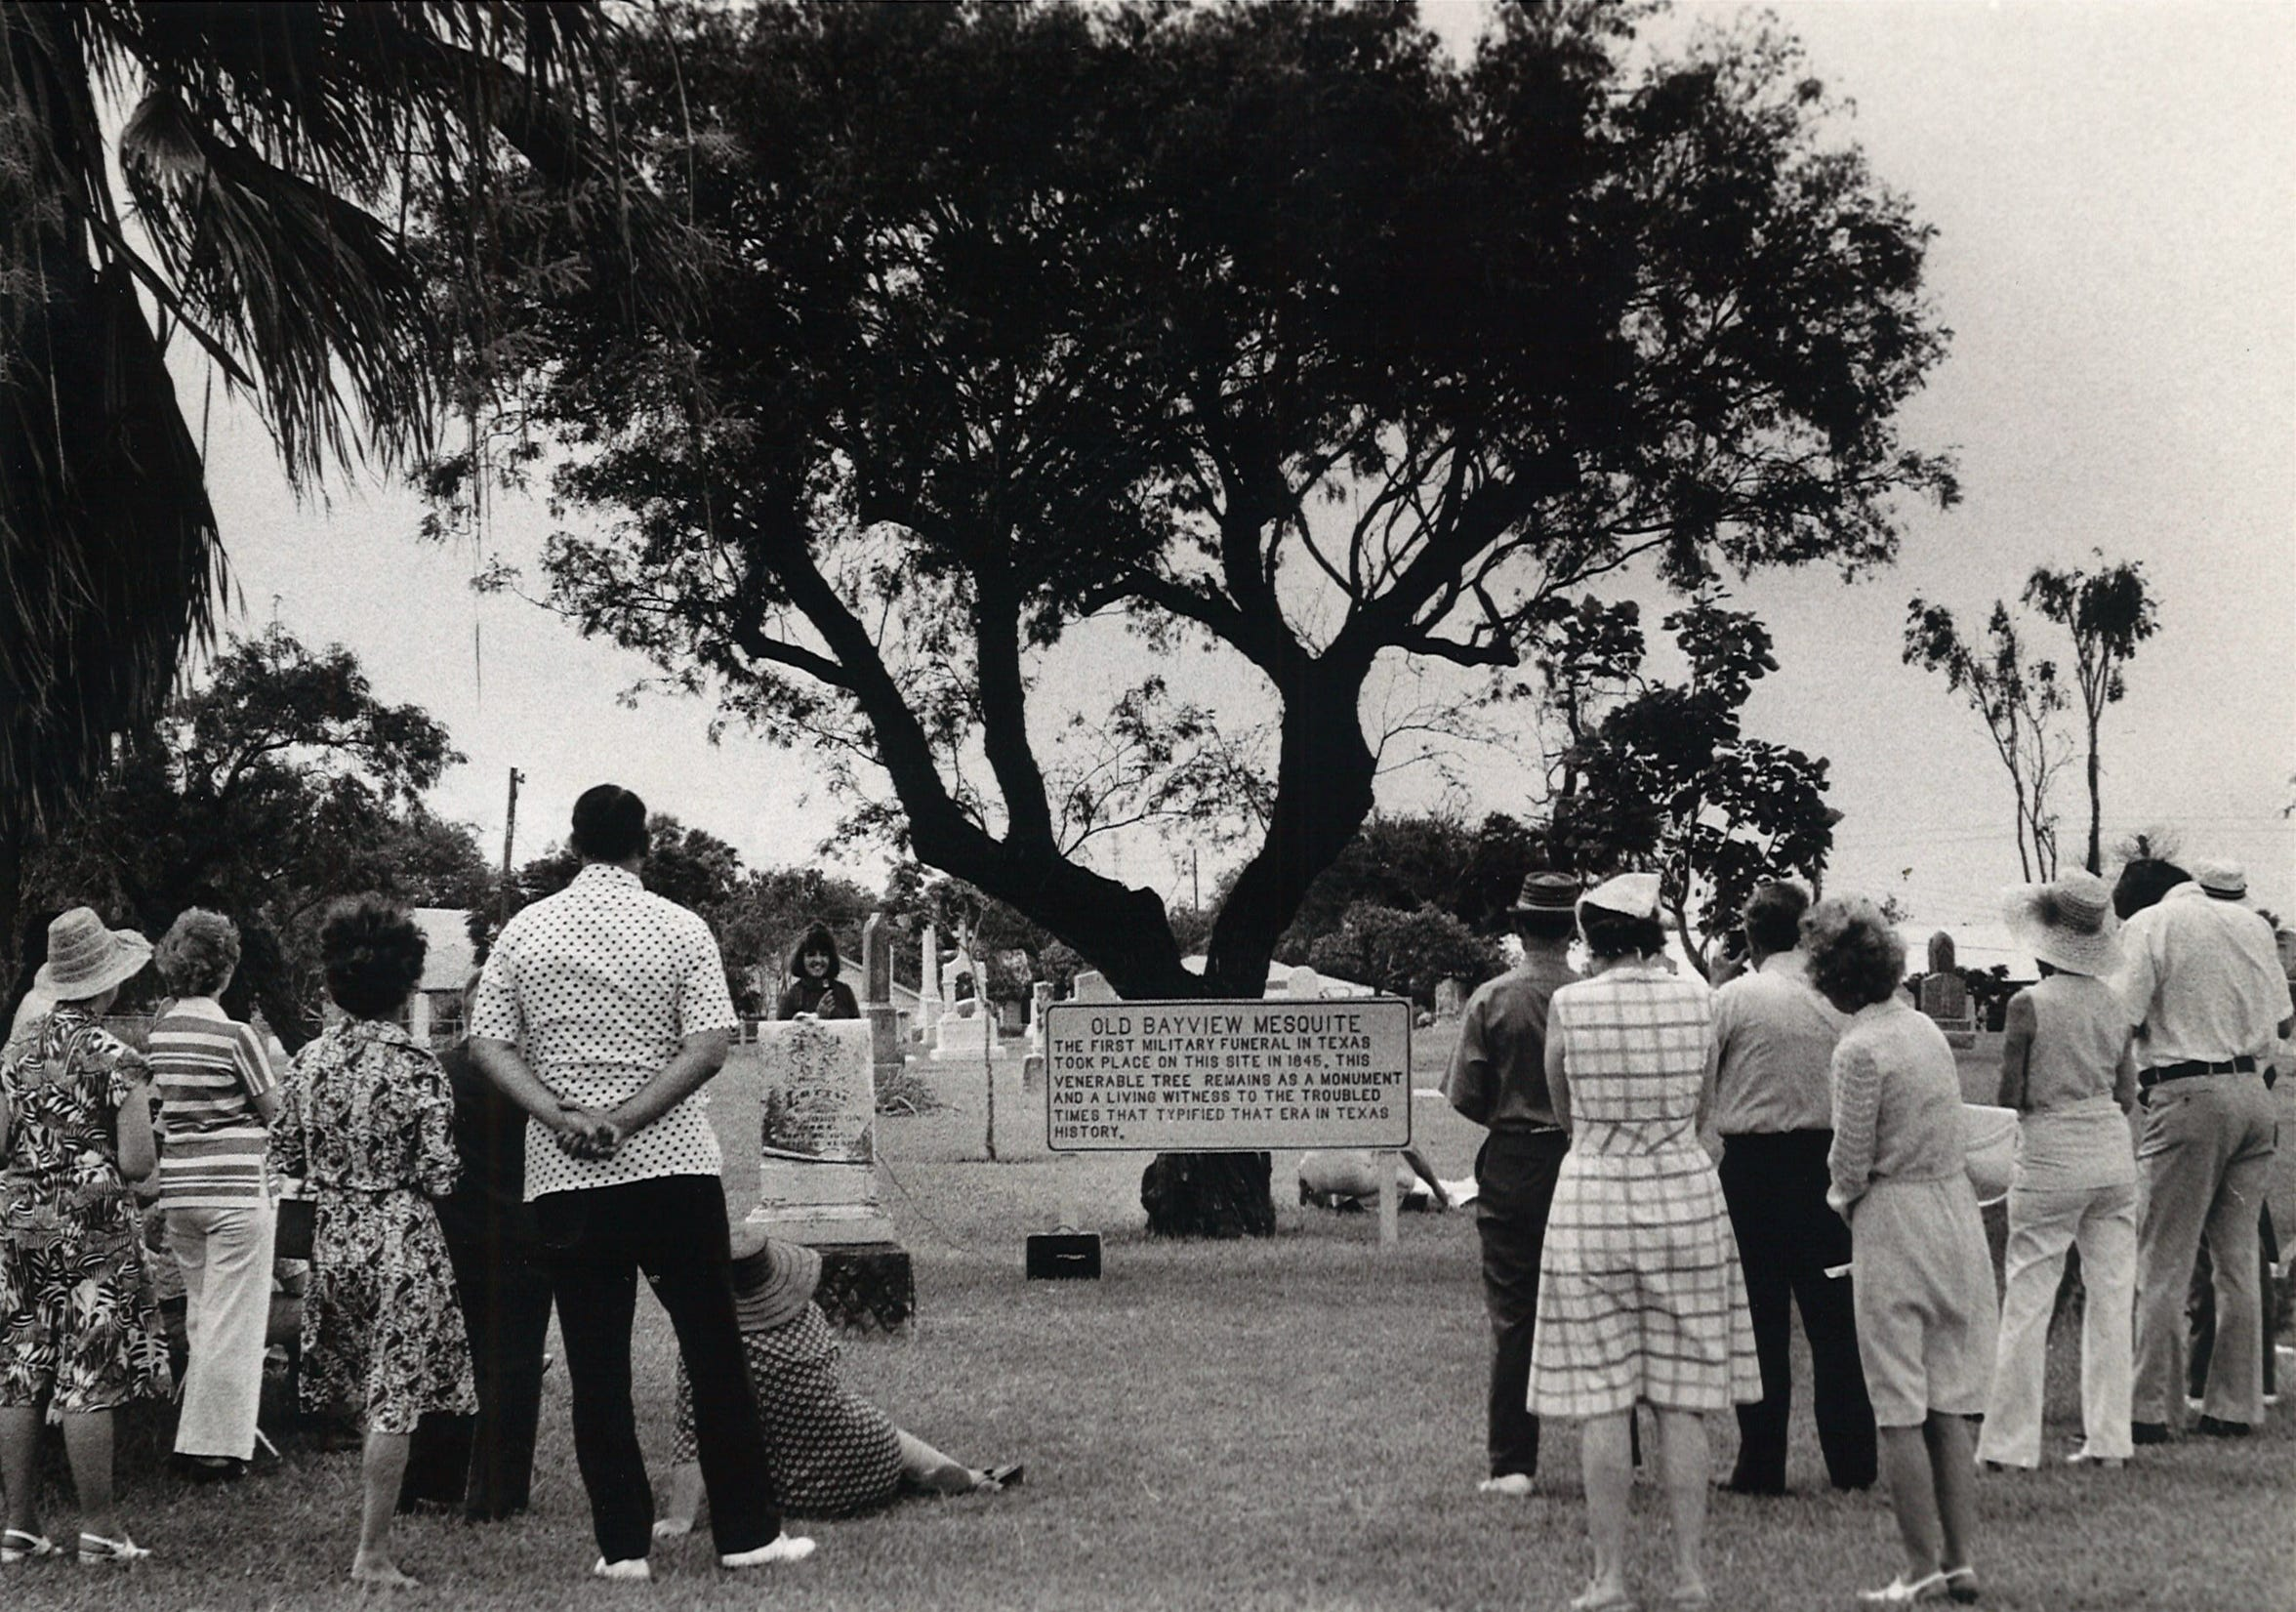 Members of the Bicentennial Commission, Parks and Recreation Board and Beautify Corpus Christi Association dedicate temporary marker about the Old Bayview Mesquite on July 4, 1976. The tree was over 200 years old when it died in 1986.